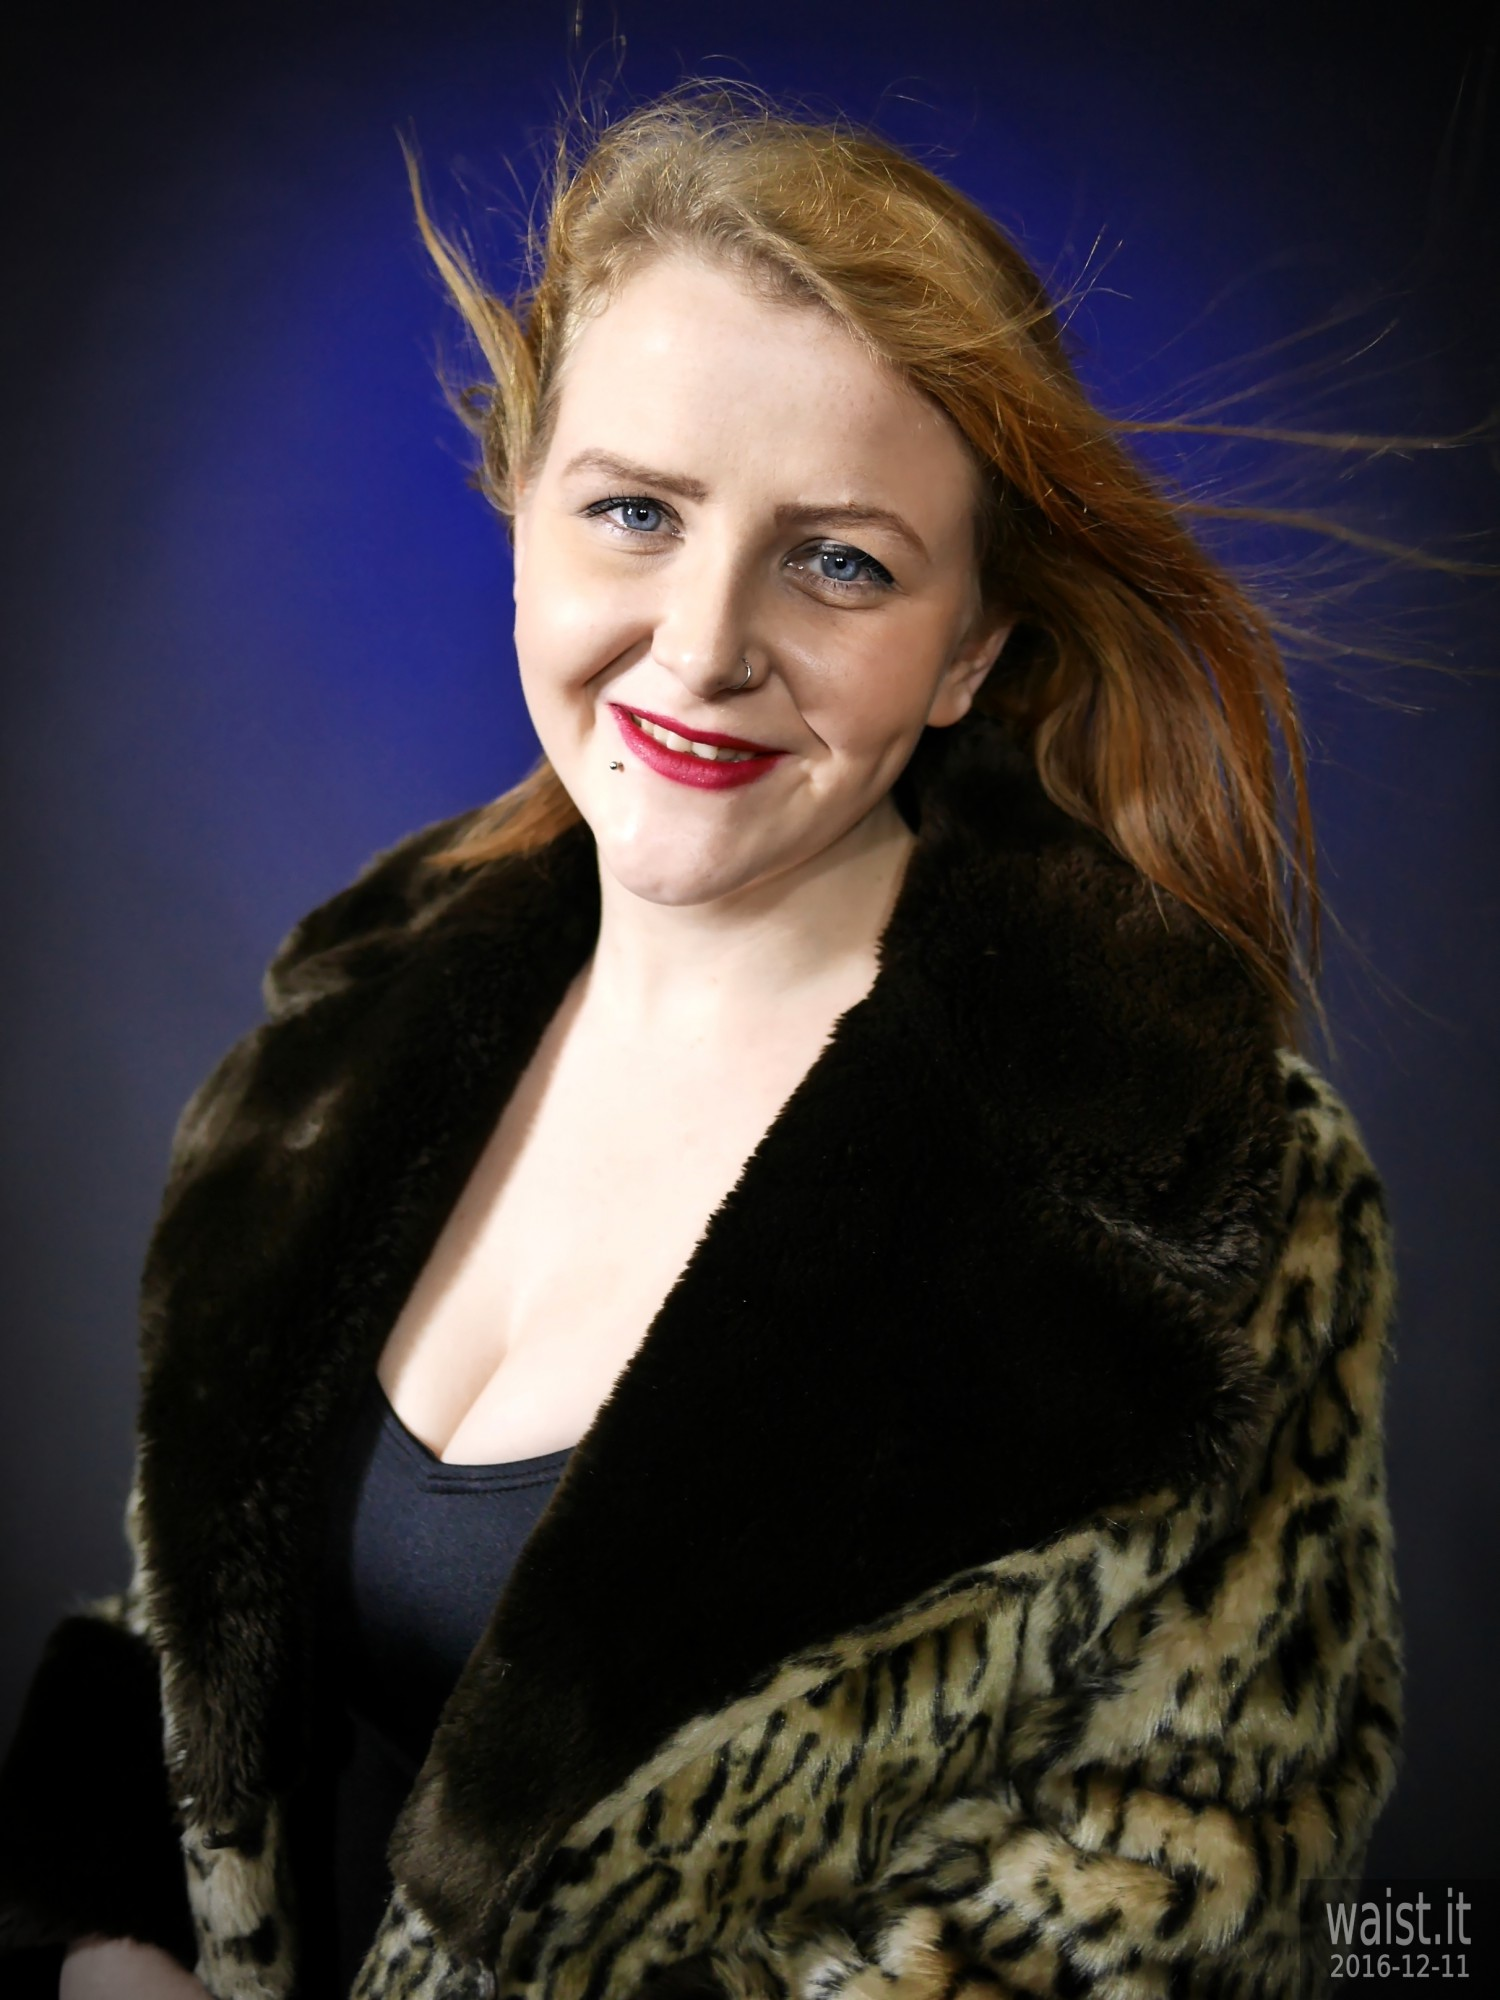 2019-12-11 Char portrait, wearing fur coat